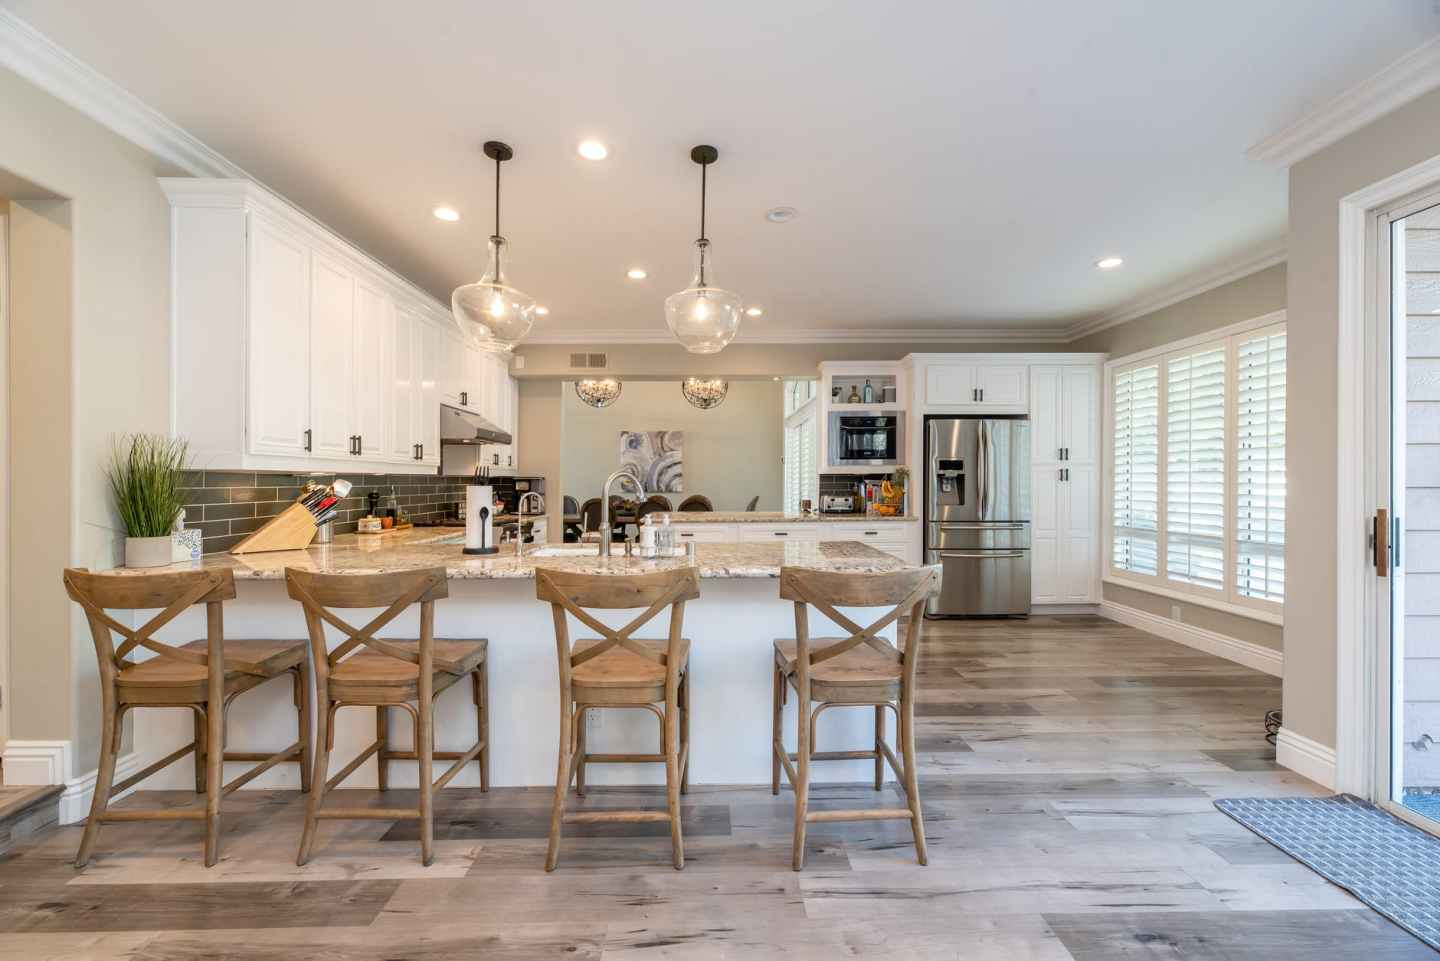 Zillow's Top 10 Home Trends for 2021